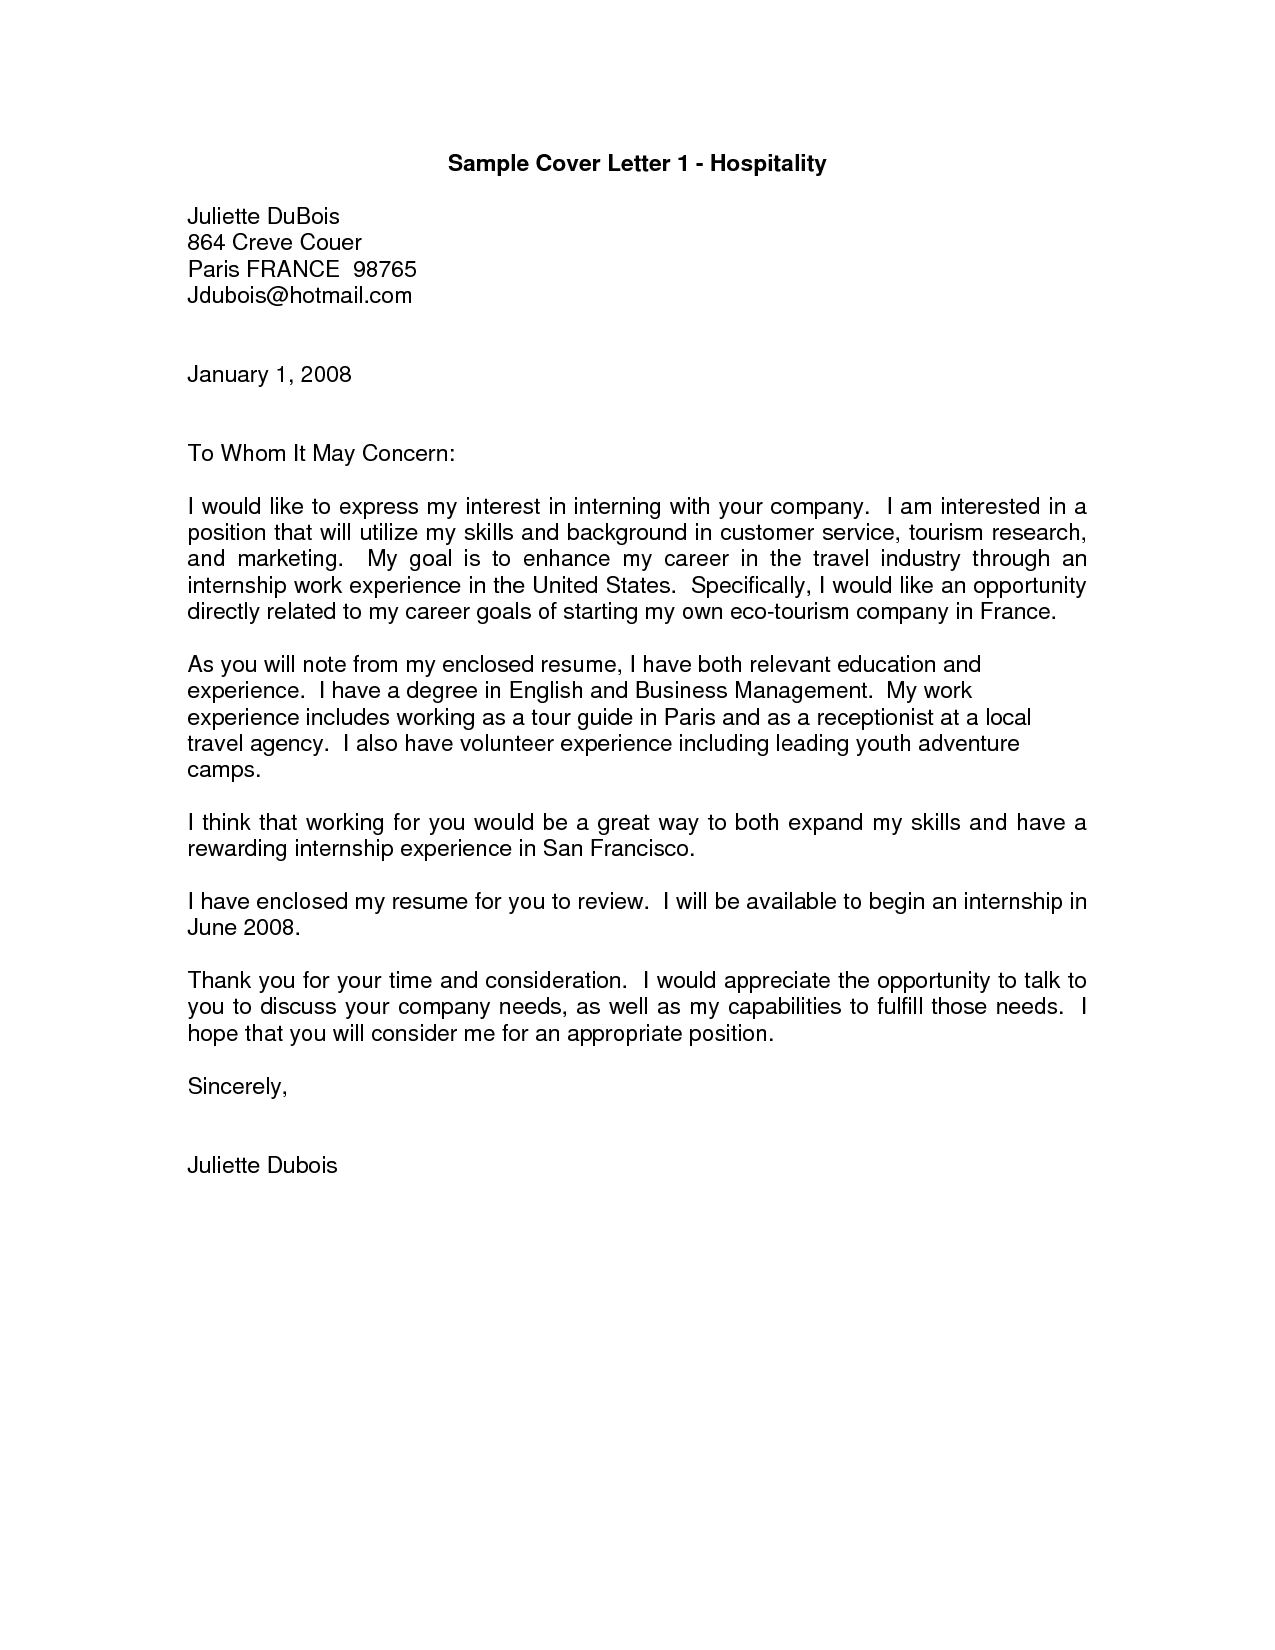 Cover Letter To Whom It May Concern Alternative Cover